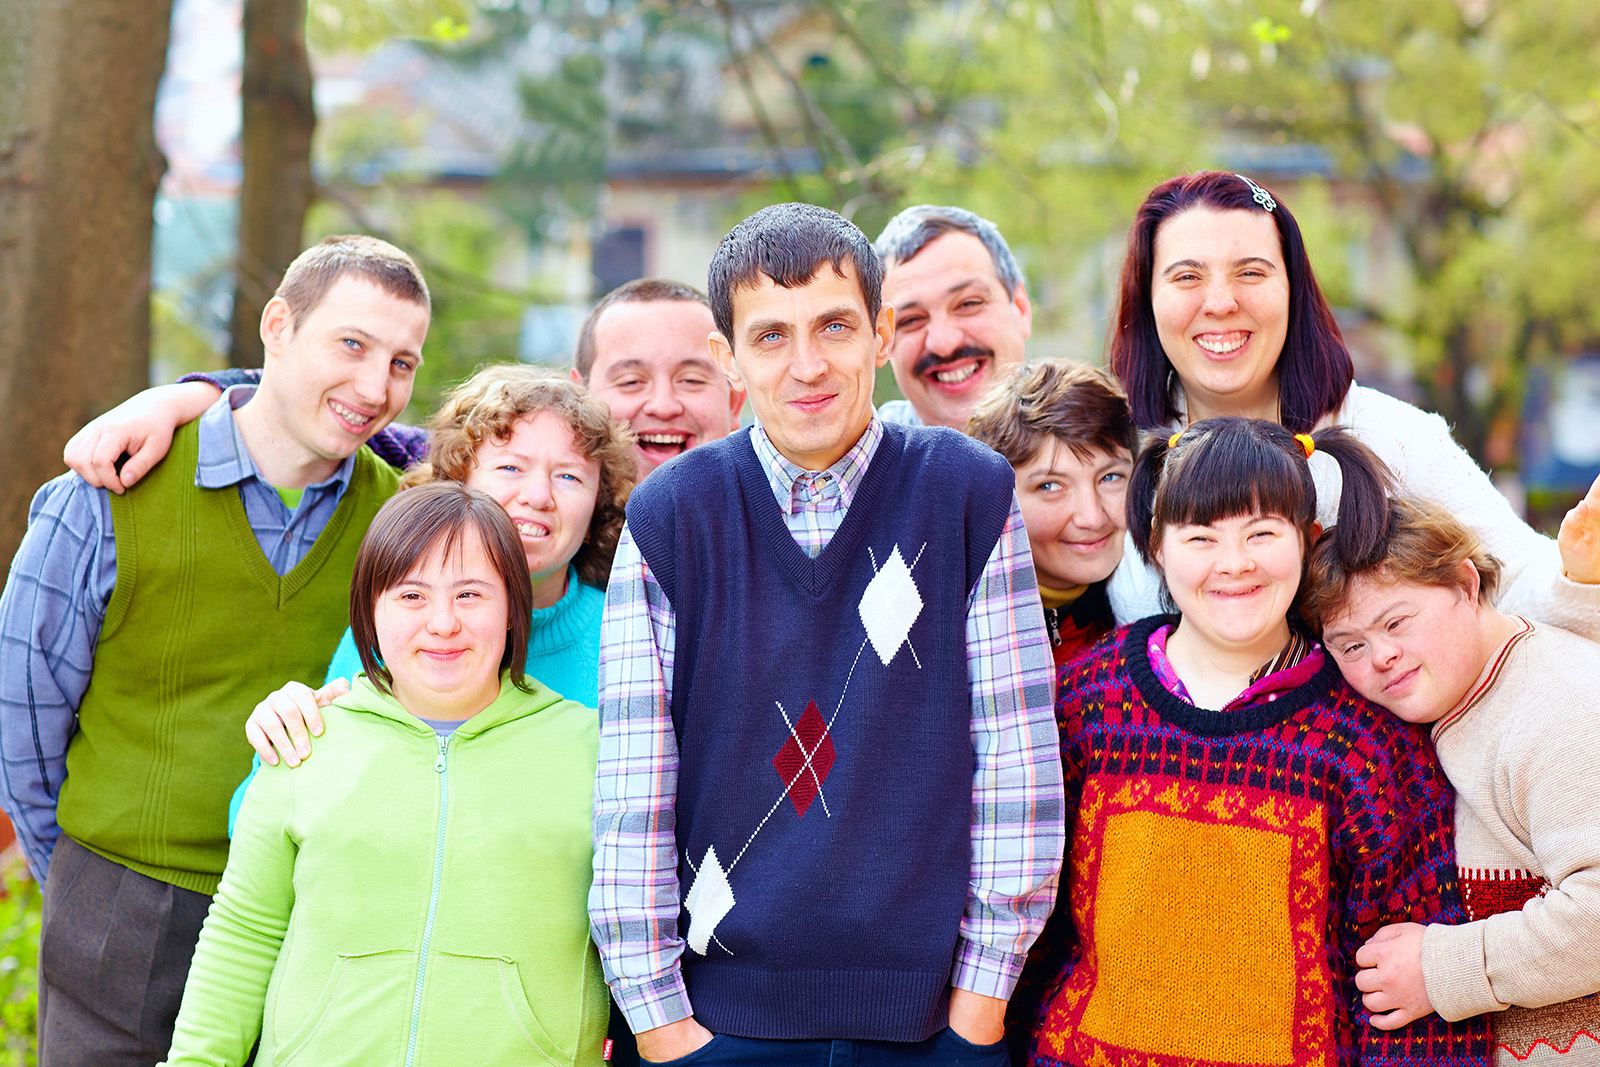 Group of happy people with developmental disabilities